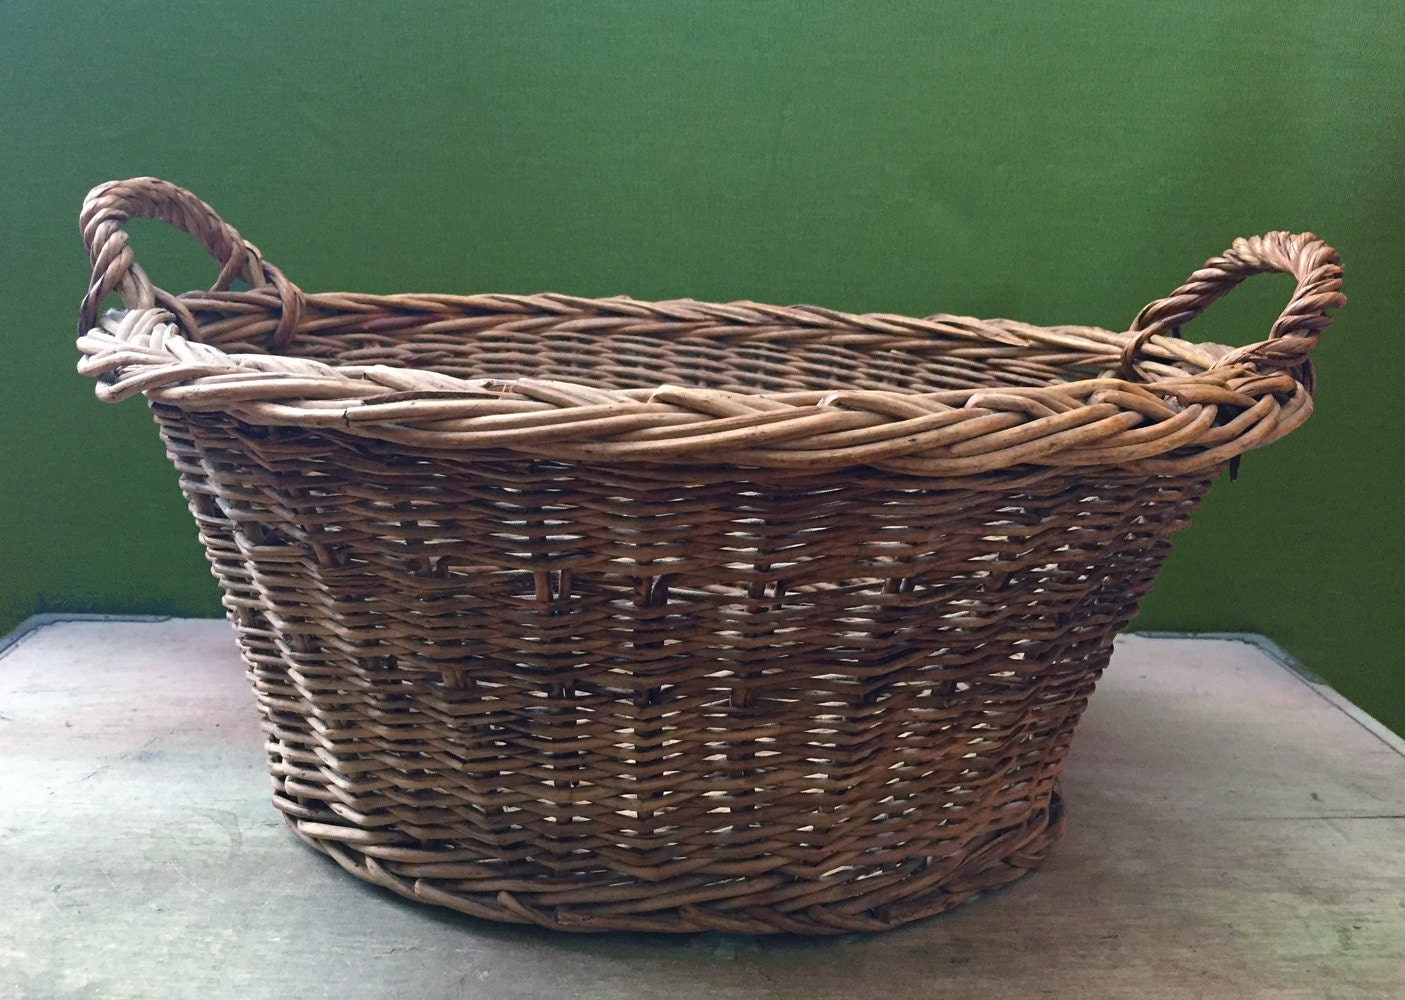 How To Weave A Basket Out Of Twigs : Vintage wicker gathering basket hand woven twig laundry